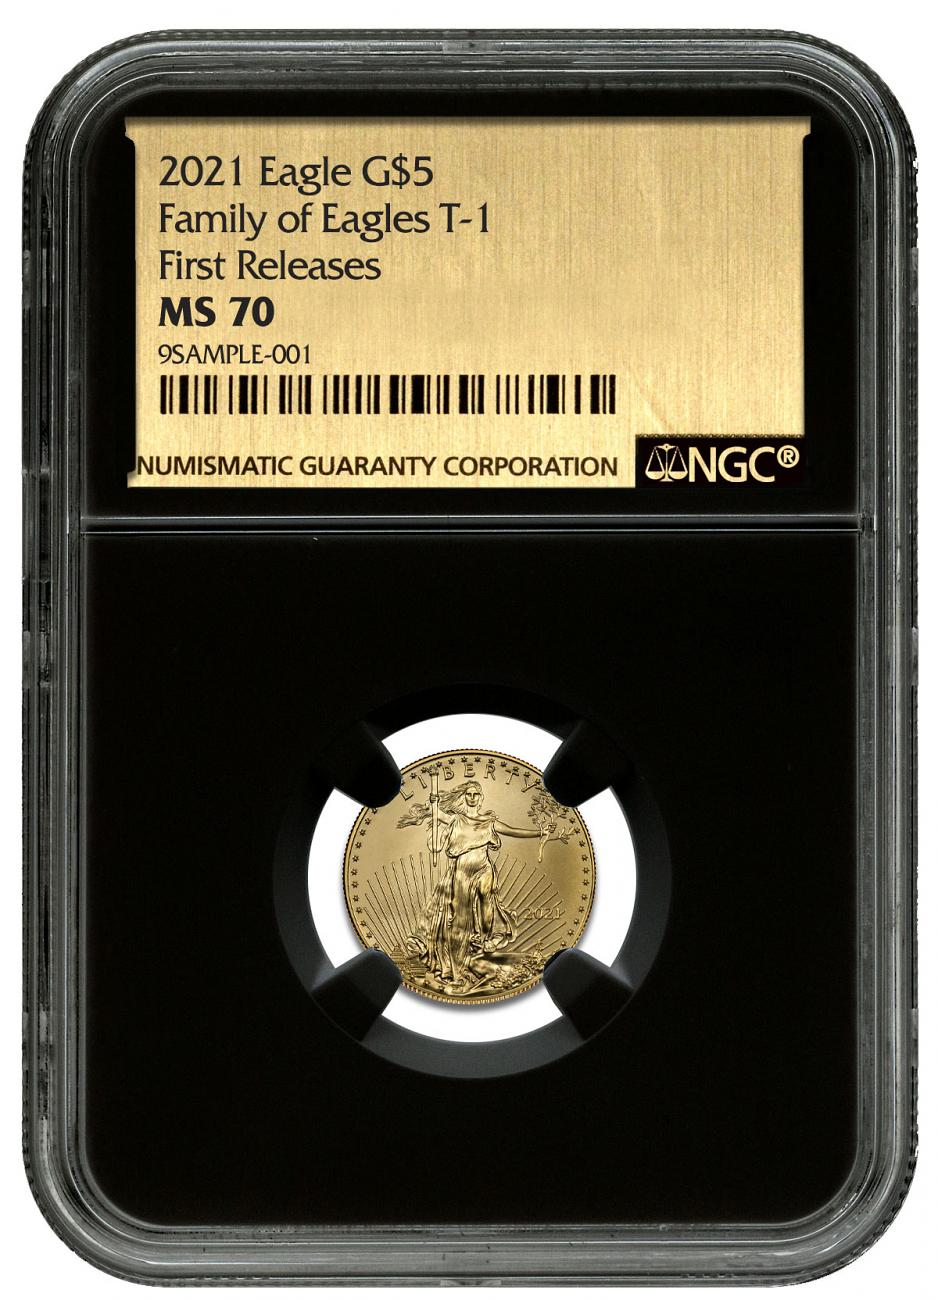 2021 1/10 oz Gold American Eagle T-1 $5 Coin NGC MS70 FR Black Core Holder Exclusive Gold Foil Label